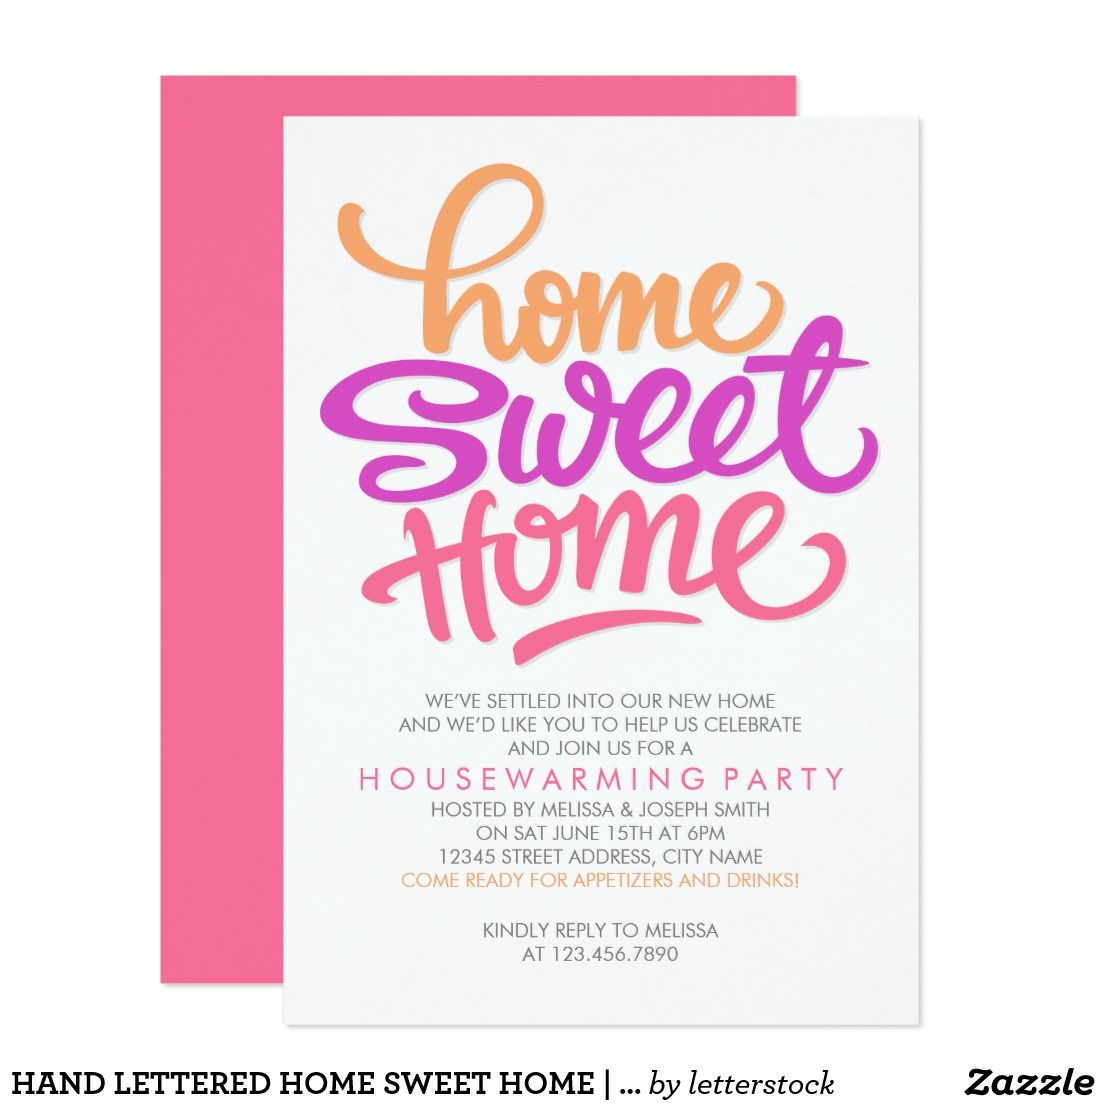 HAND LETTERED HOME SWEET HOME HOUSEWARMING PARTY CARD HAND